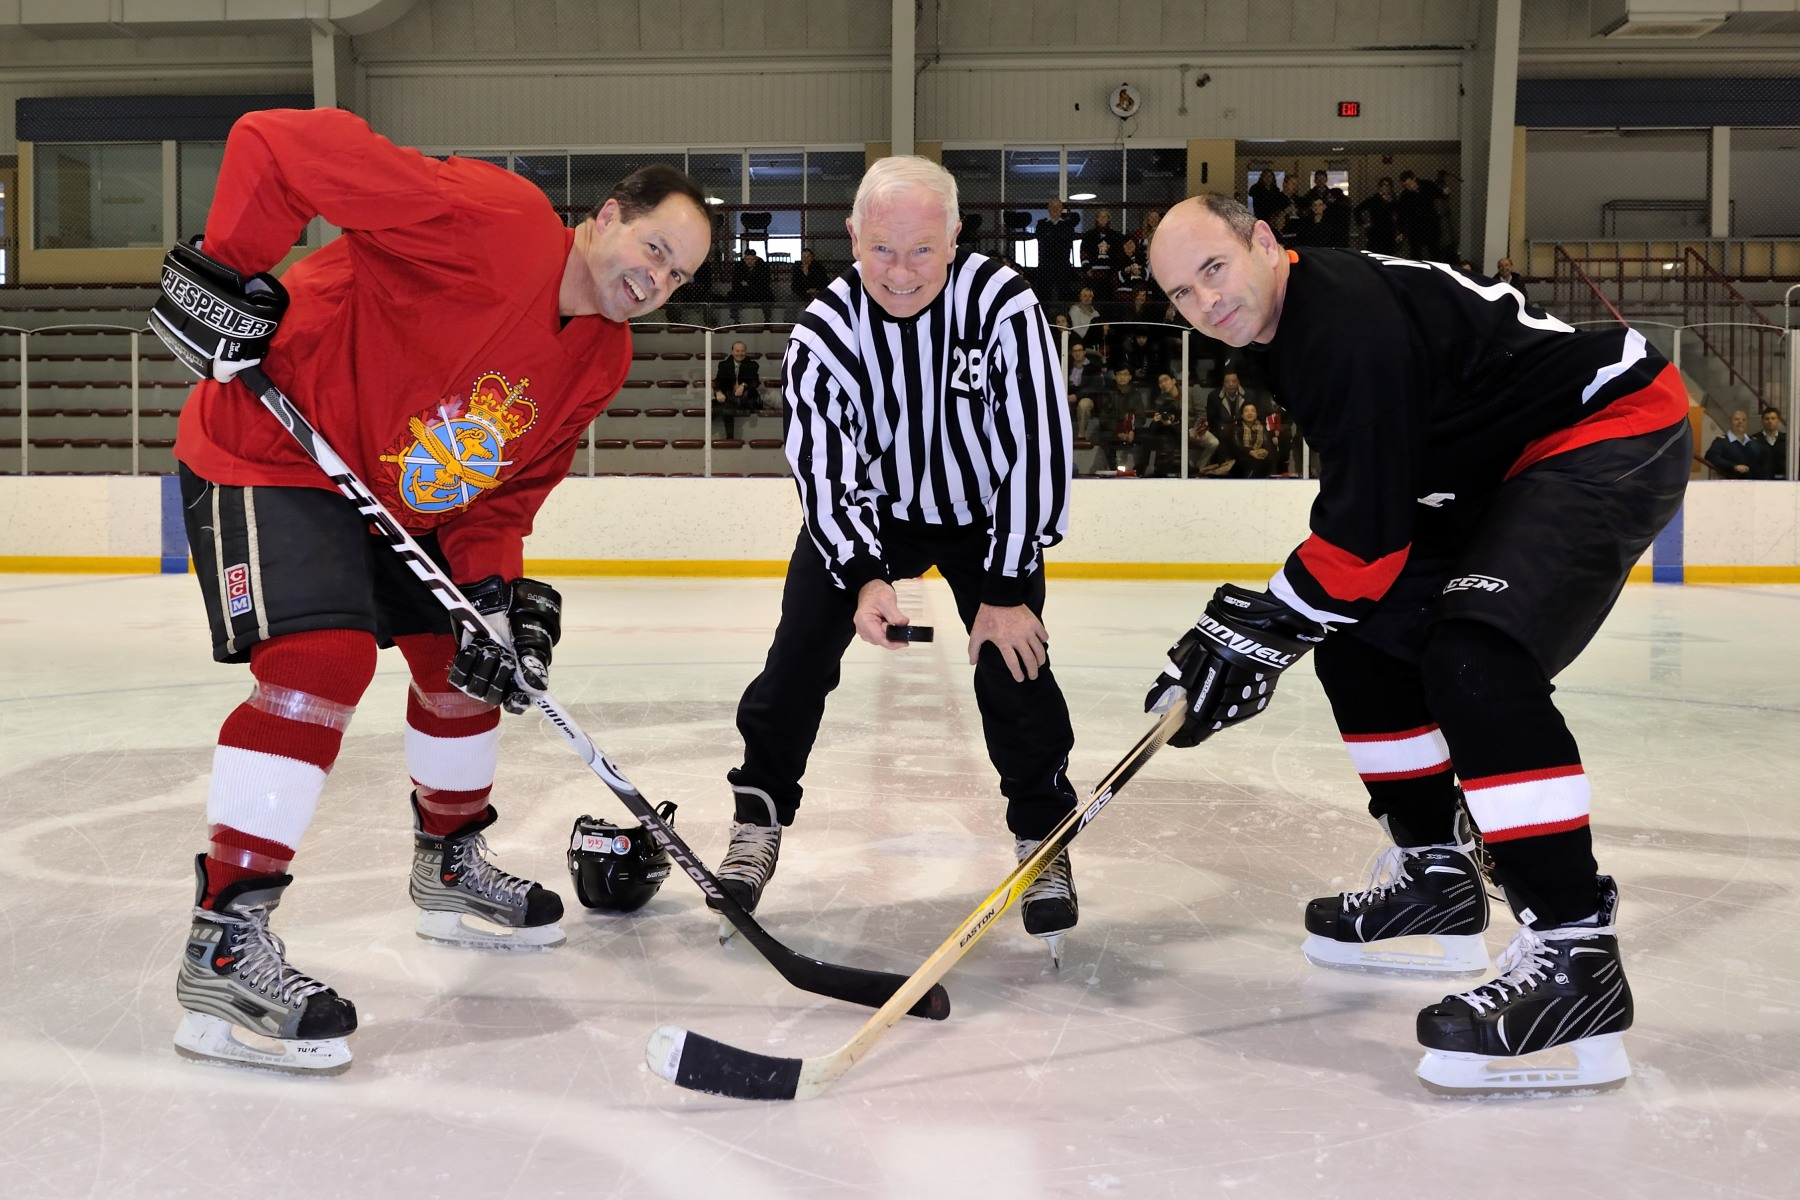 His Excellency conducted the official puck-drop with captains from both teams: Chief of the Defence Staff General Tom Lawson of the GOFO team (left), and Captain (N) Ramino Navajas (right) of the Lame Ducks team.